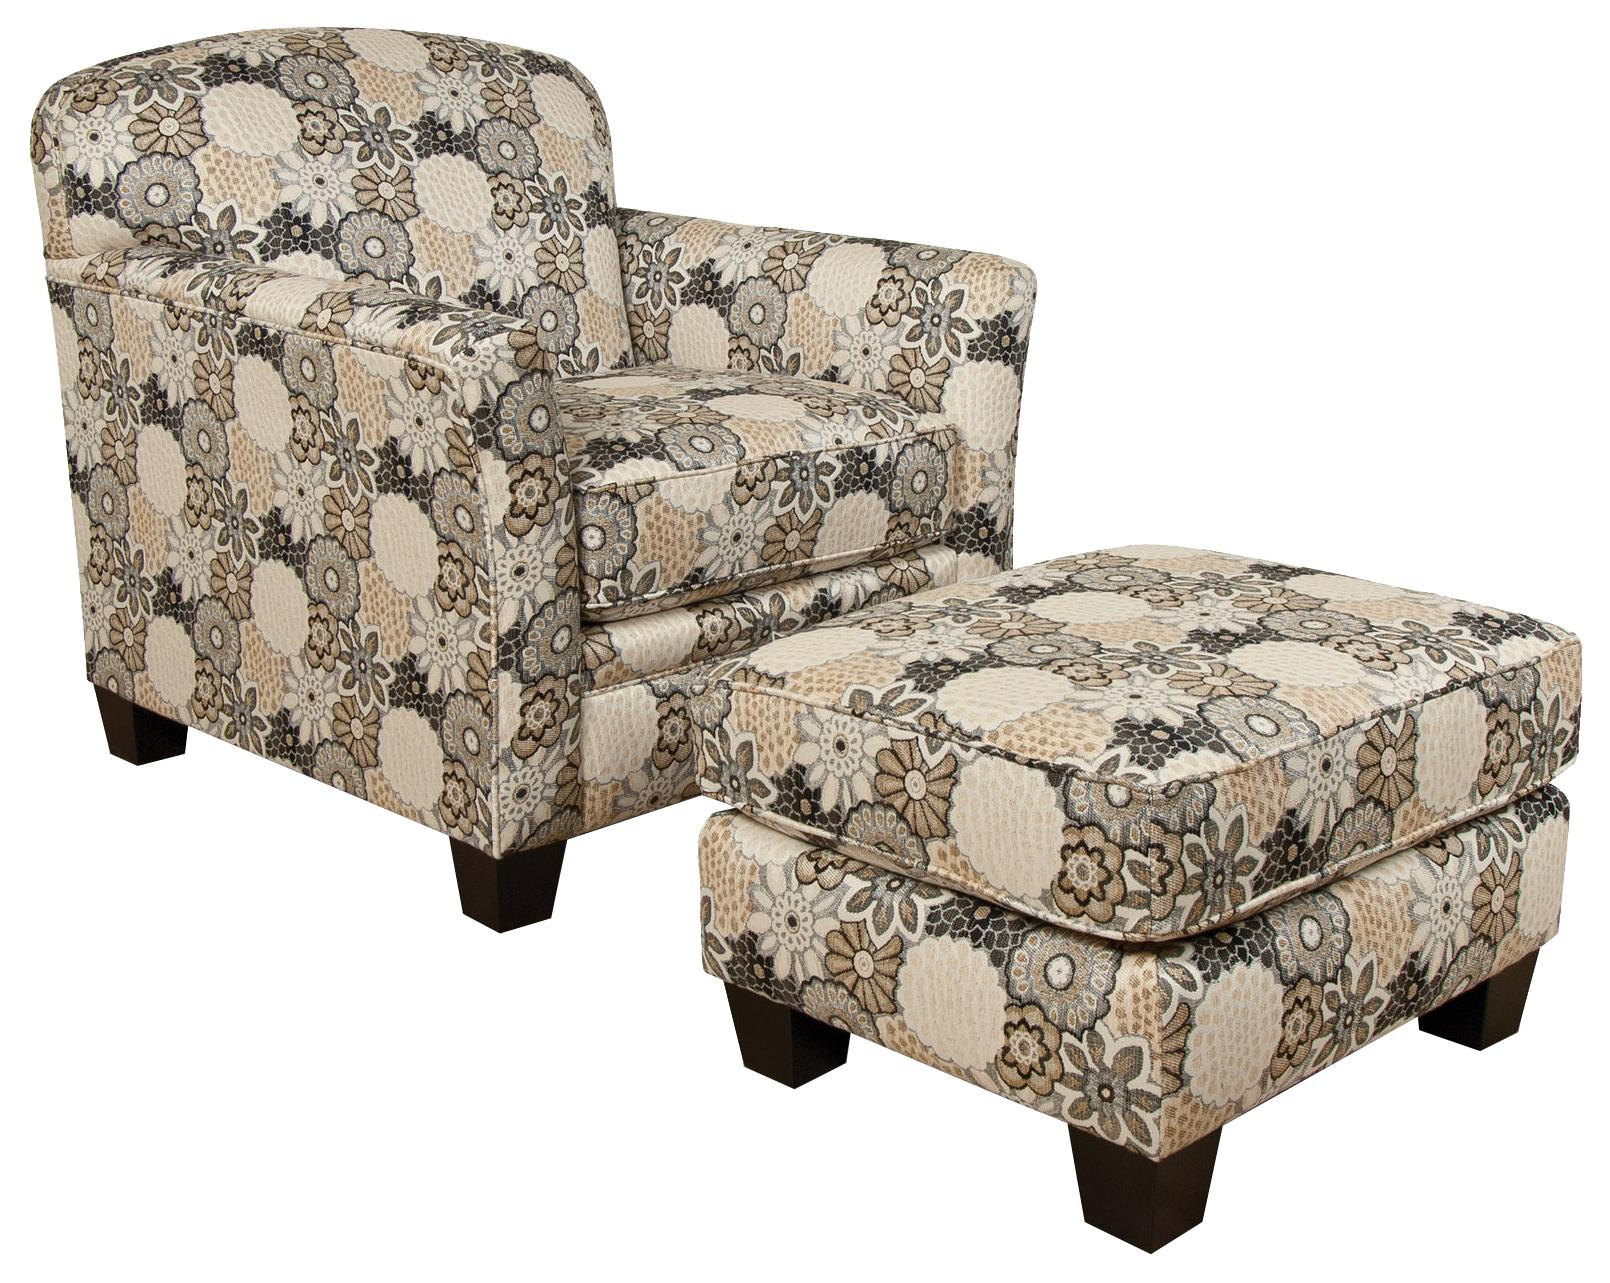 England Hilleary Chair and Ottoman Set - Item Number: 5034+7